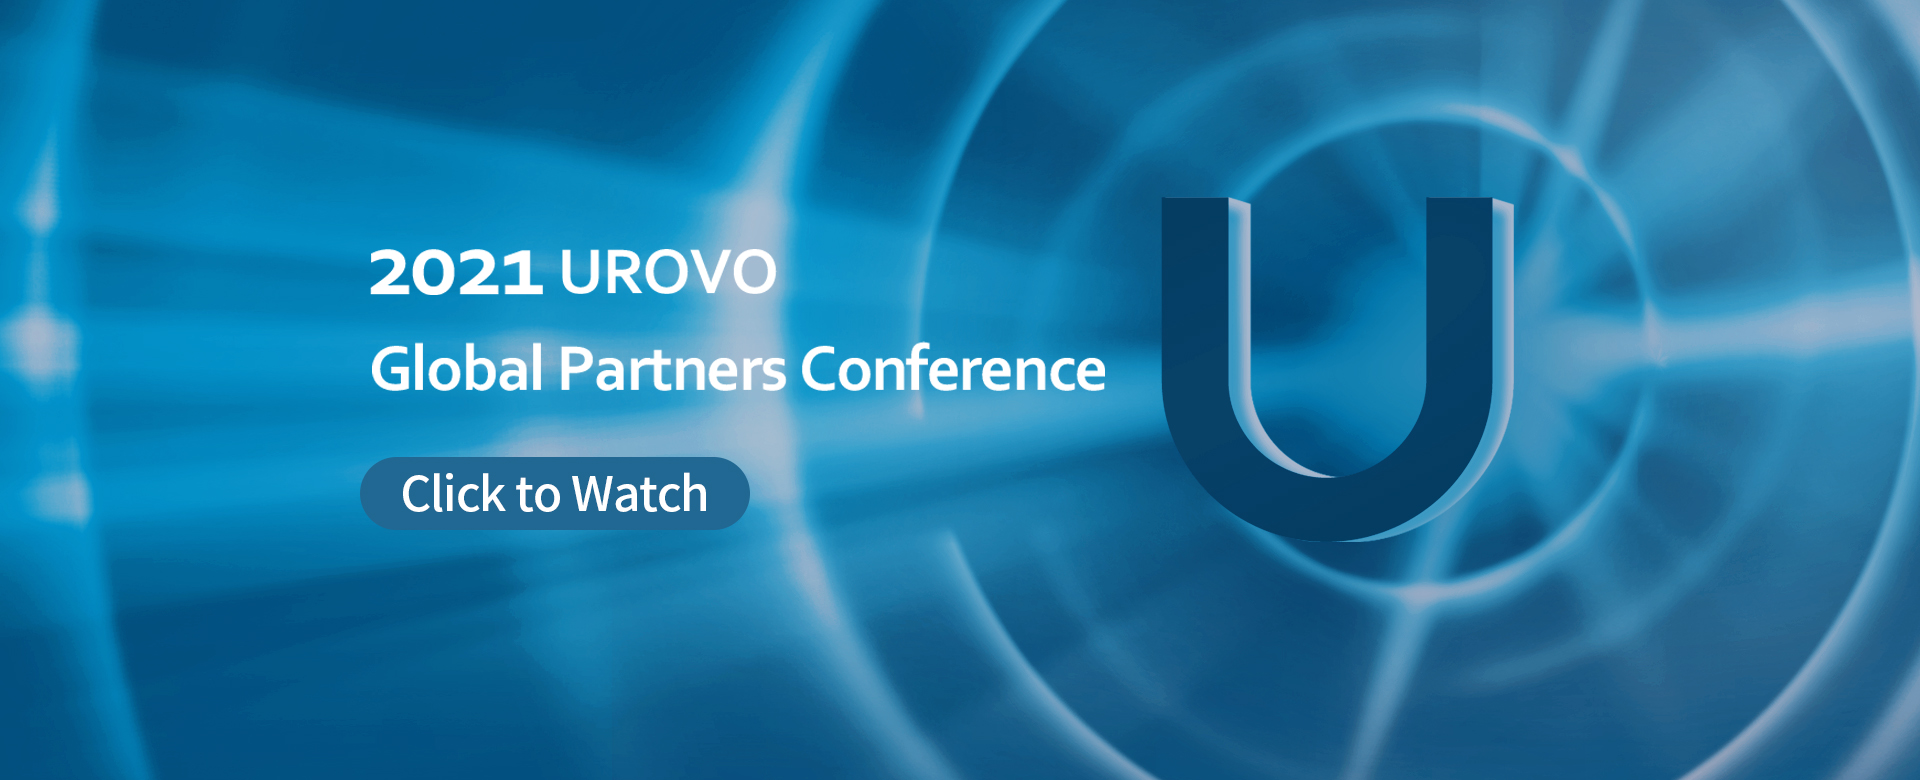 2021 UROVO Global Partners Conference